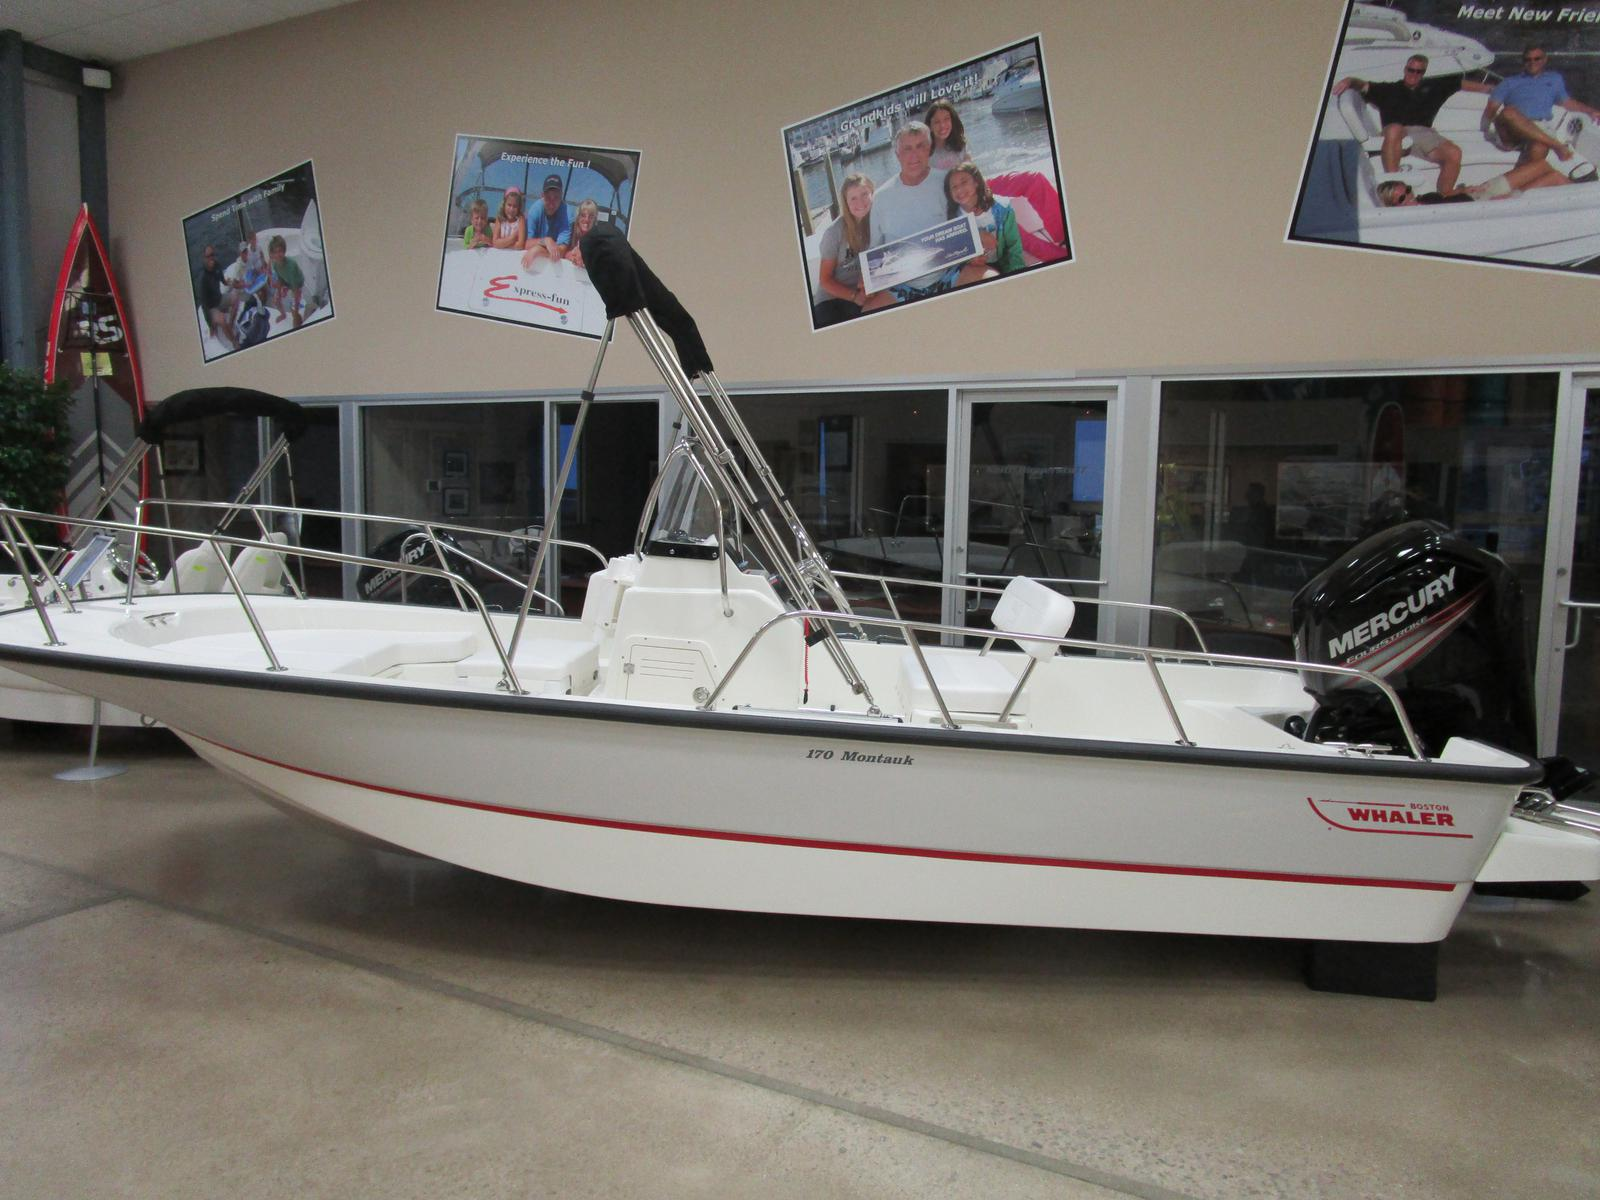 Boston whaler 170 montauk boats for sale page 3 of 6 for Danvers motor co inc